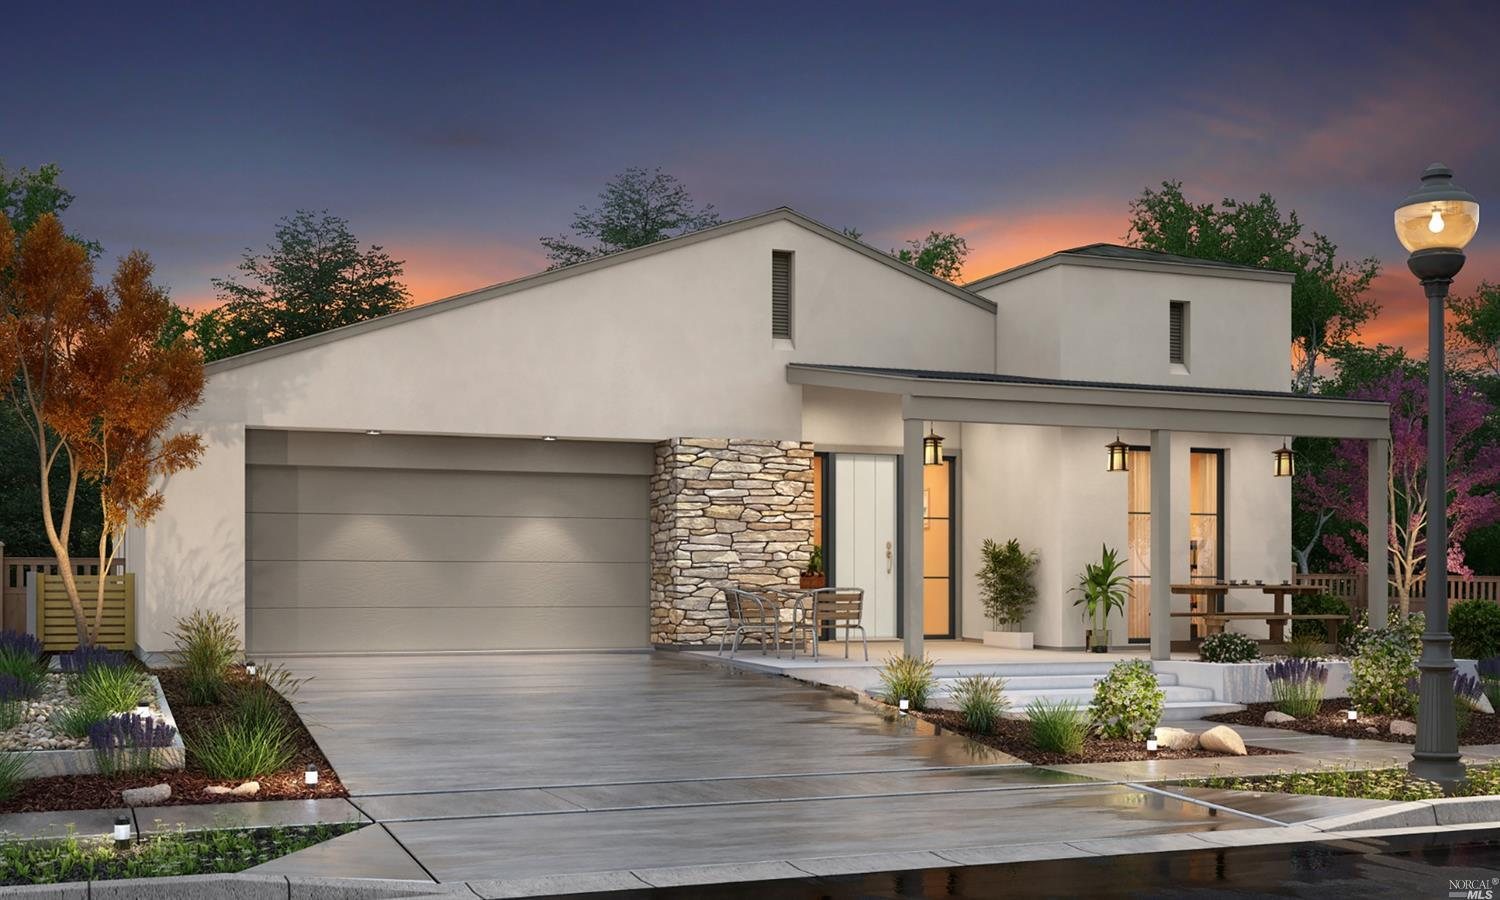 Brand New Homes in Windsor!! Home Five comes with 3BD/2BA plus a den/office and two living spaces, p